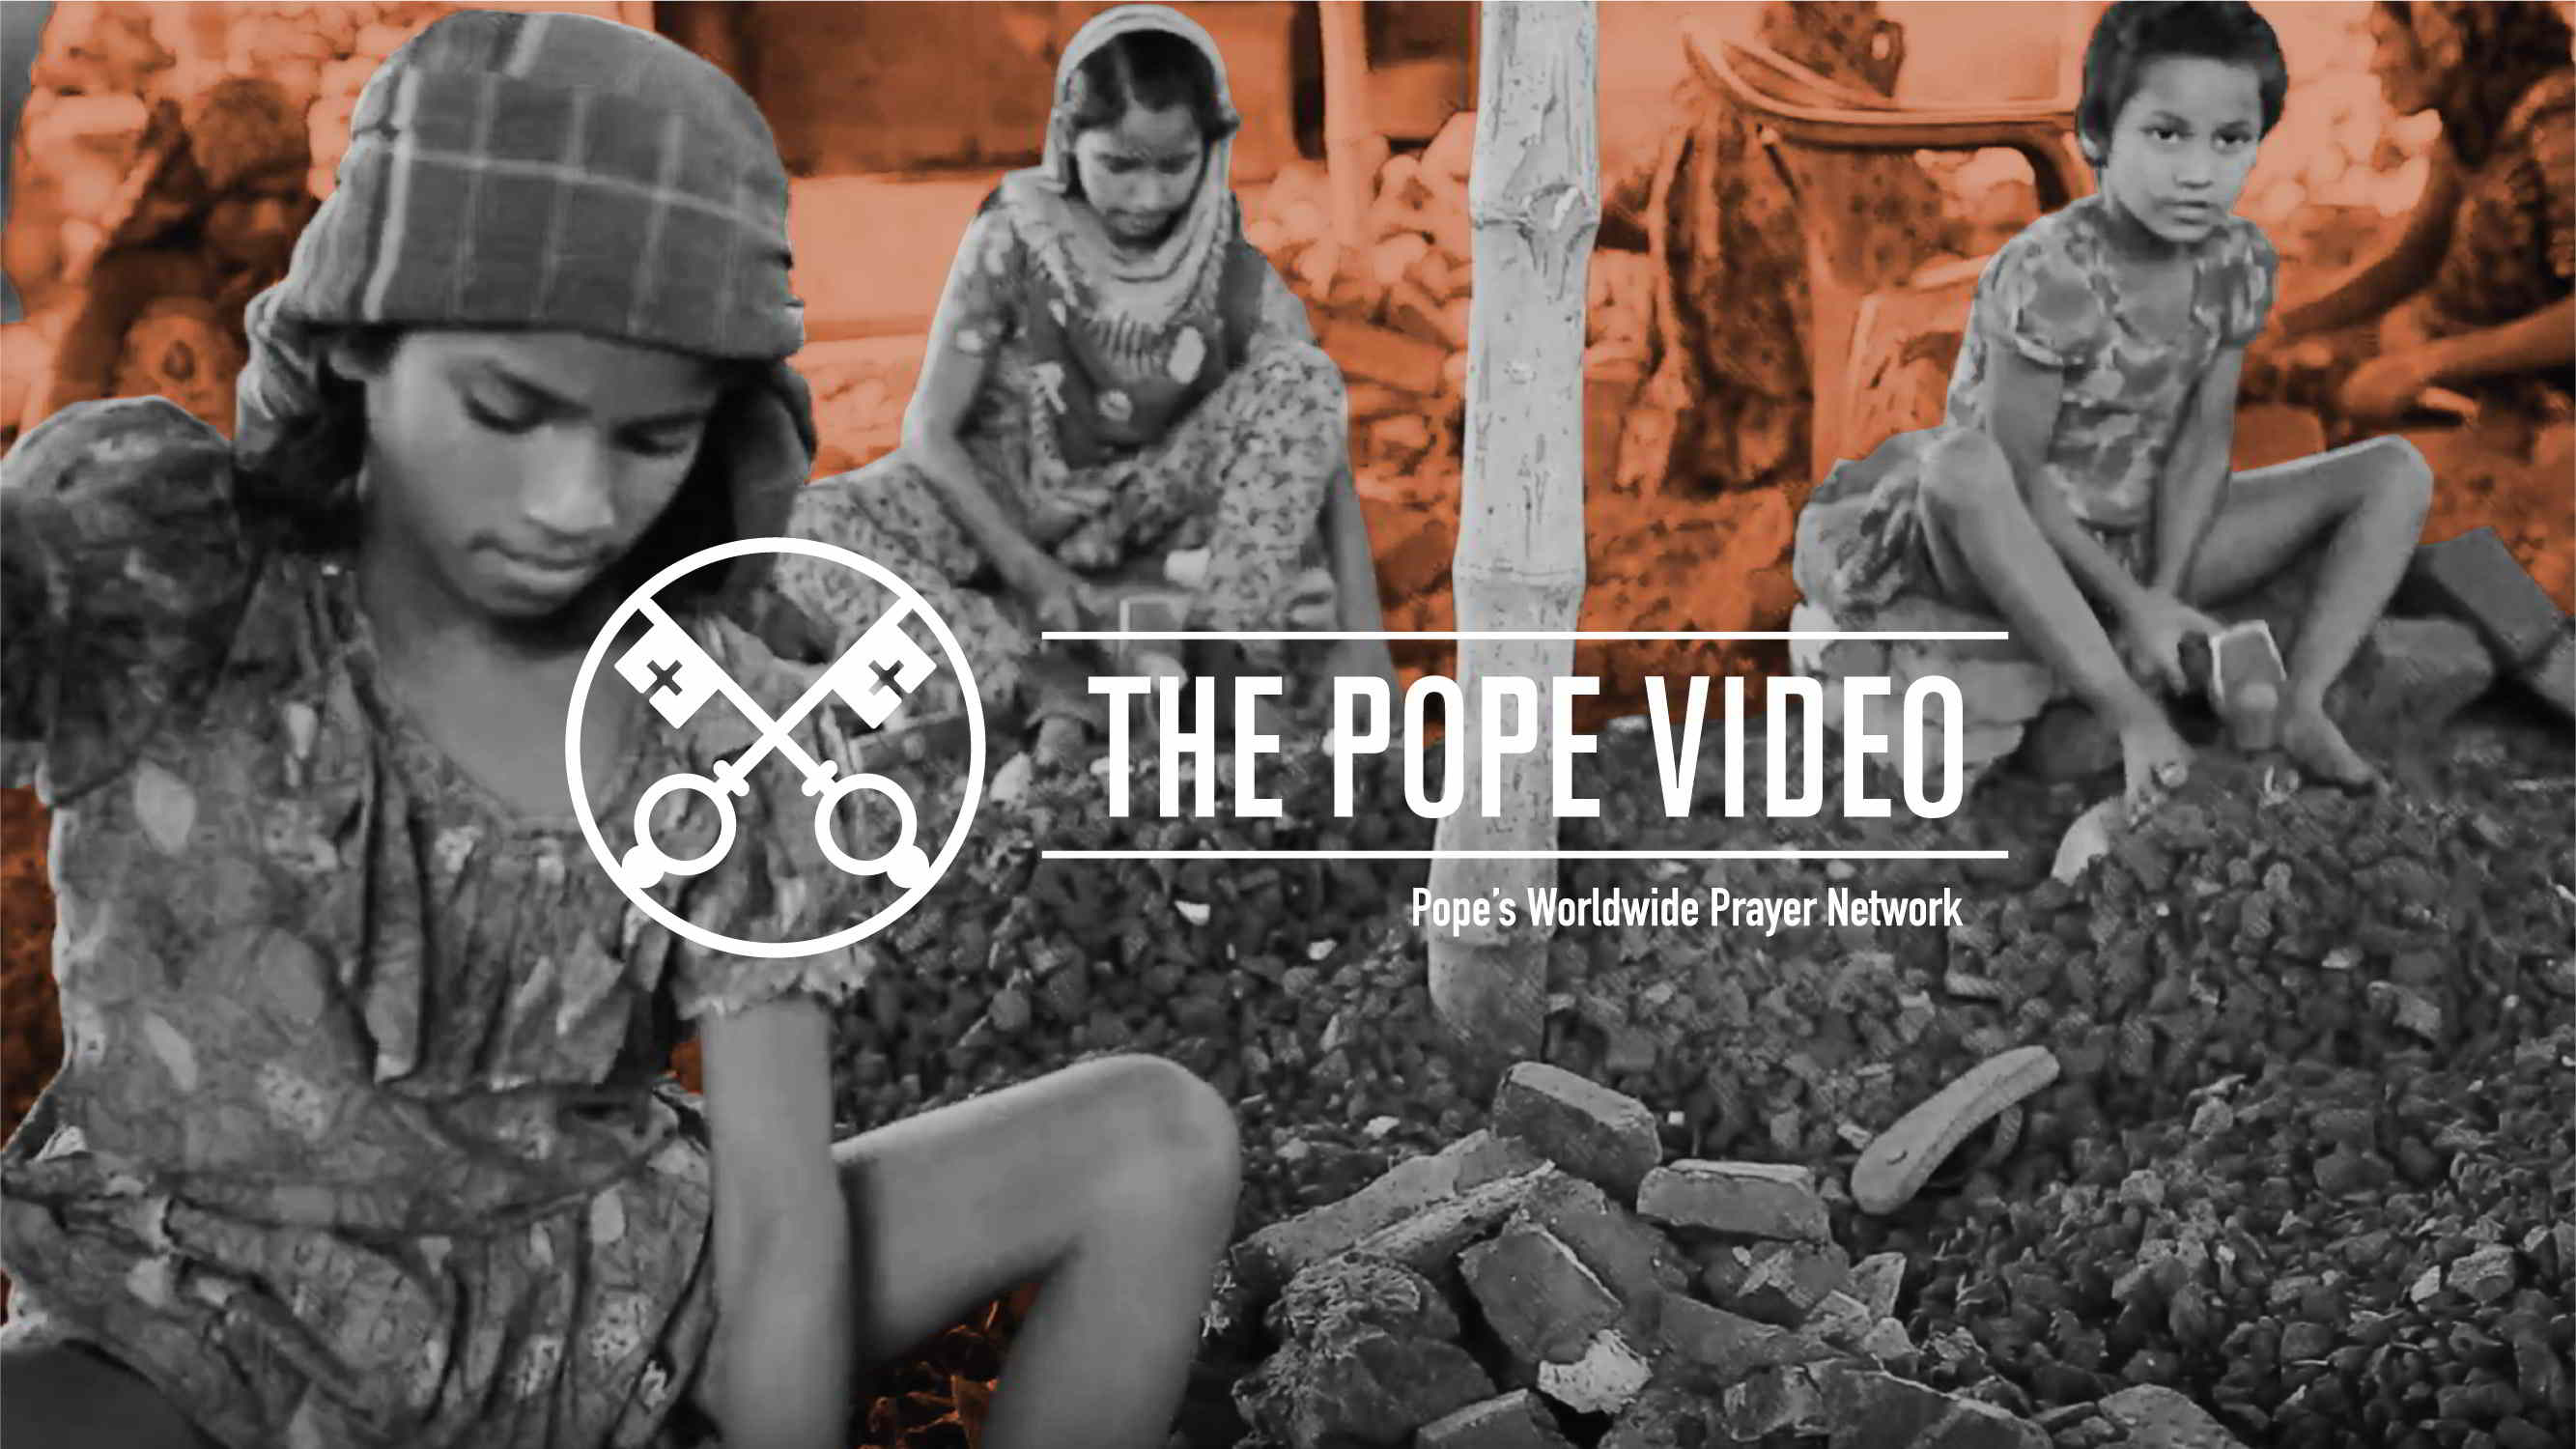 Official-Image-TPV-2-2019-1-EN-The-Pope-Video-Human-Trafficking